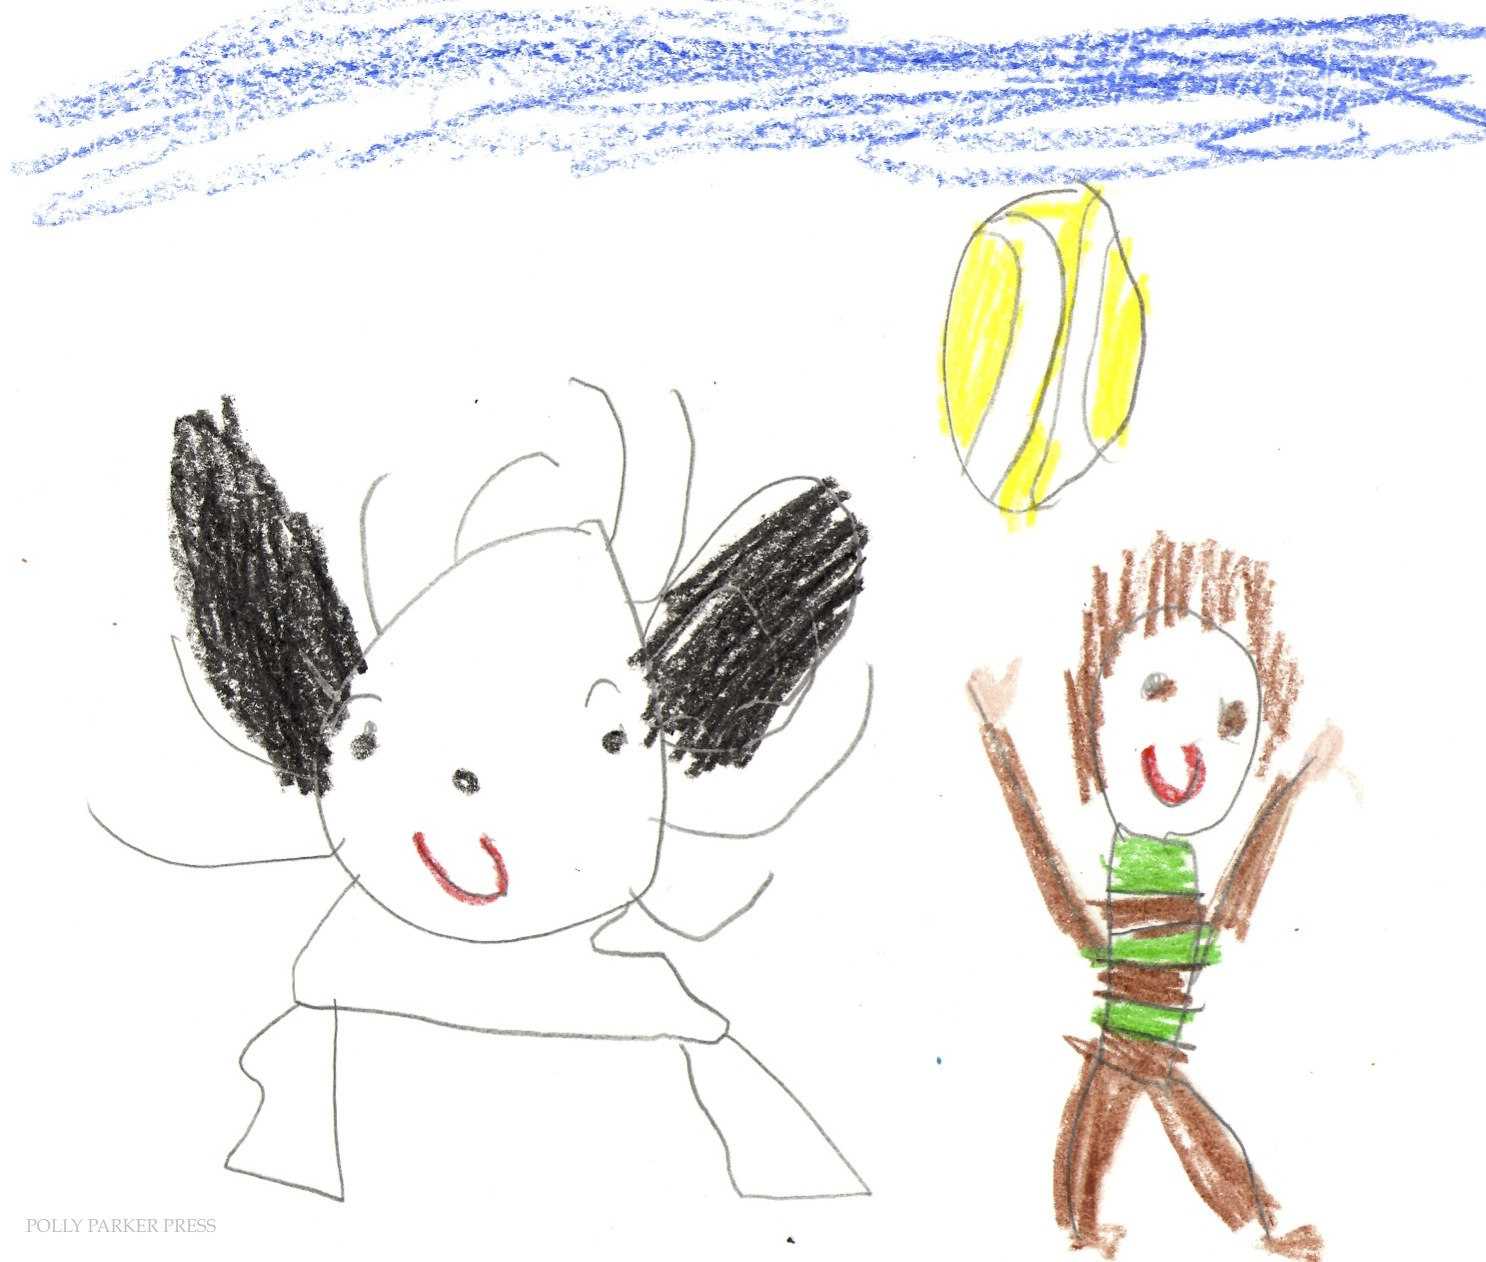 Weymouth Elementary_Norbert Fan Drawing 7_12162013.jpg